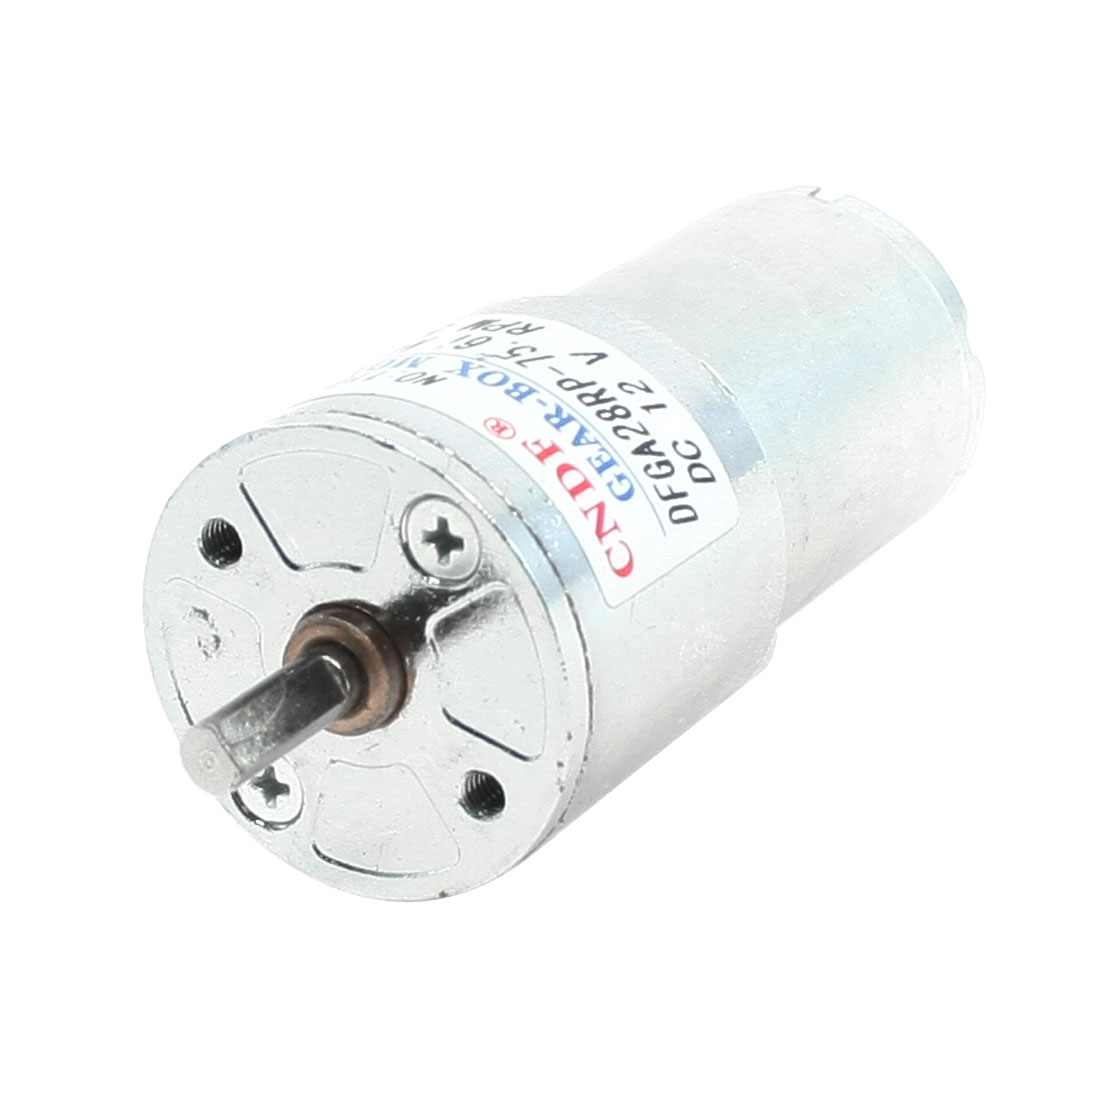 28mm Diameter Grill Electronic Parts Geared Motor 50RPM 12VDC